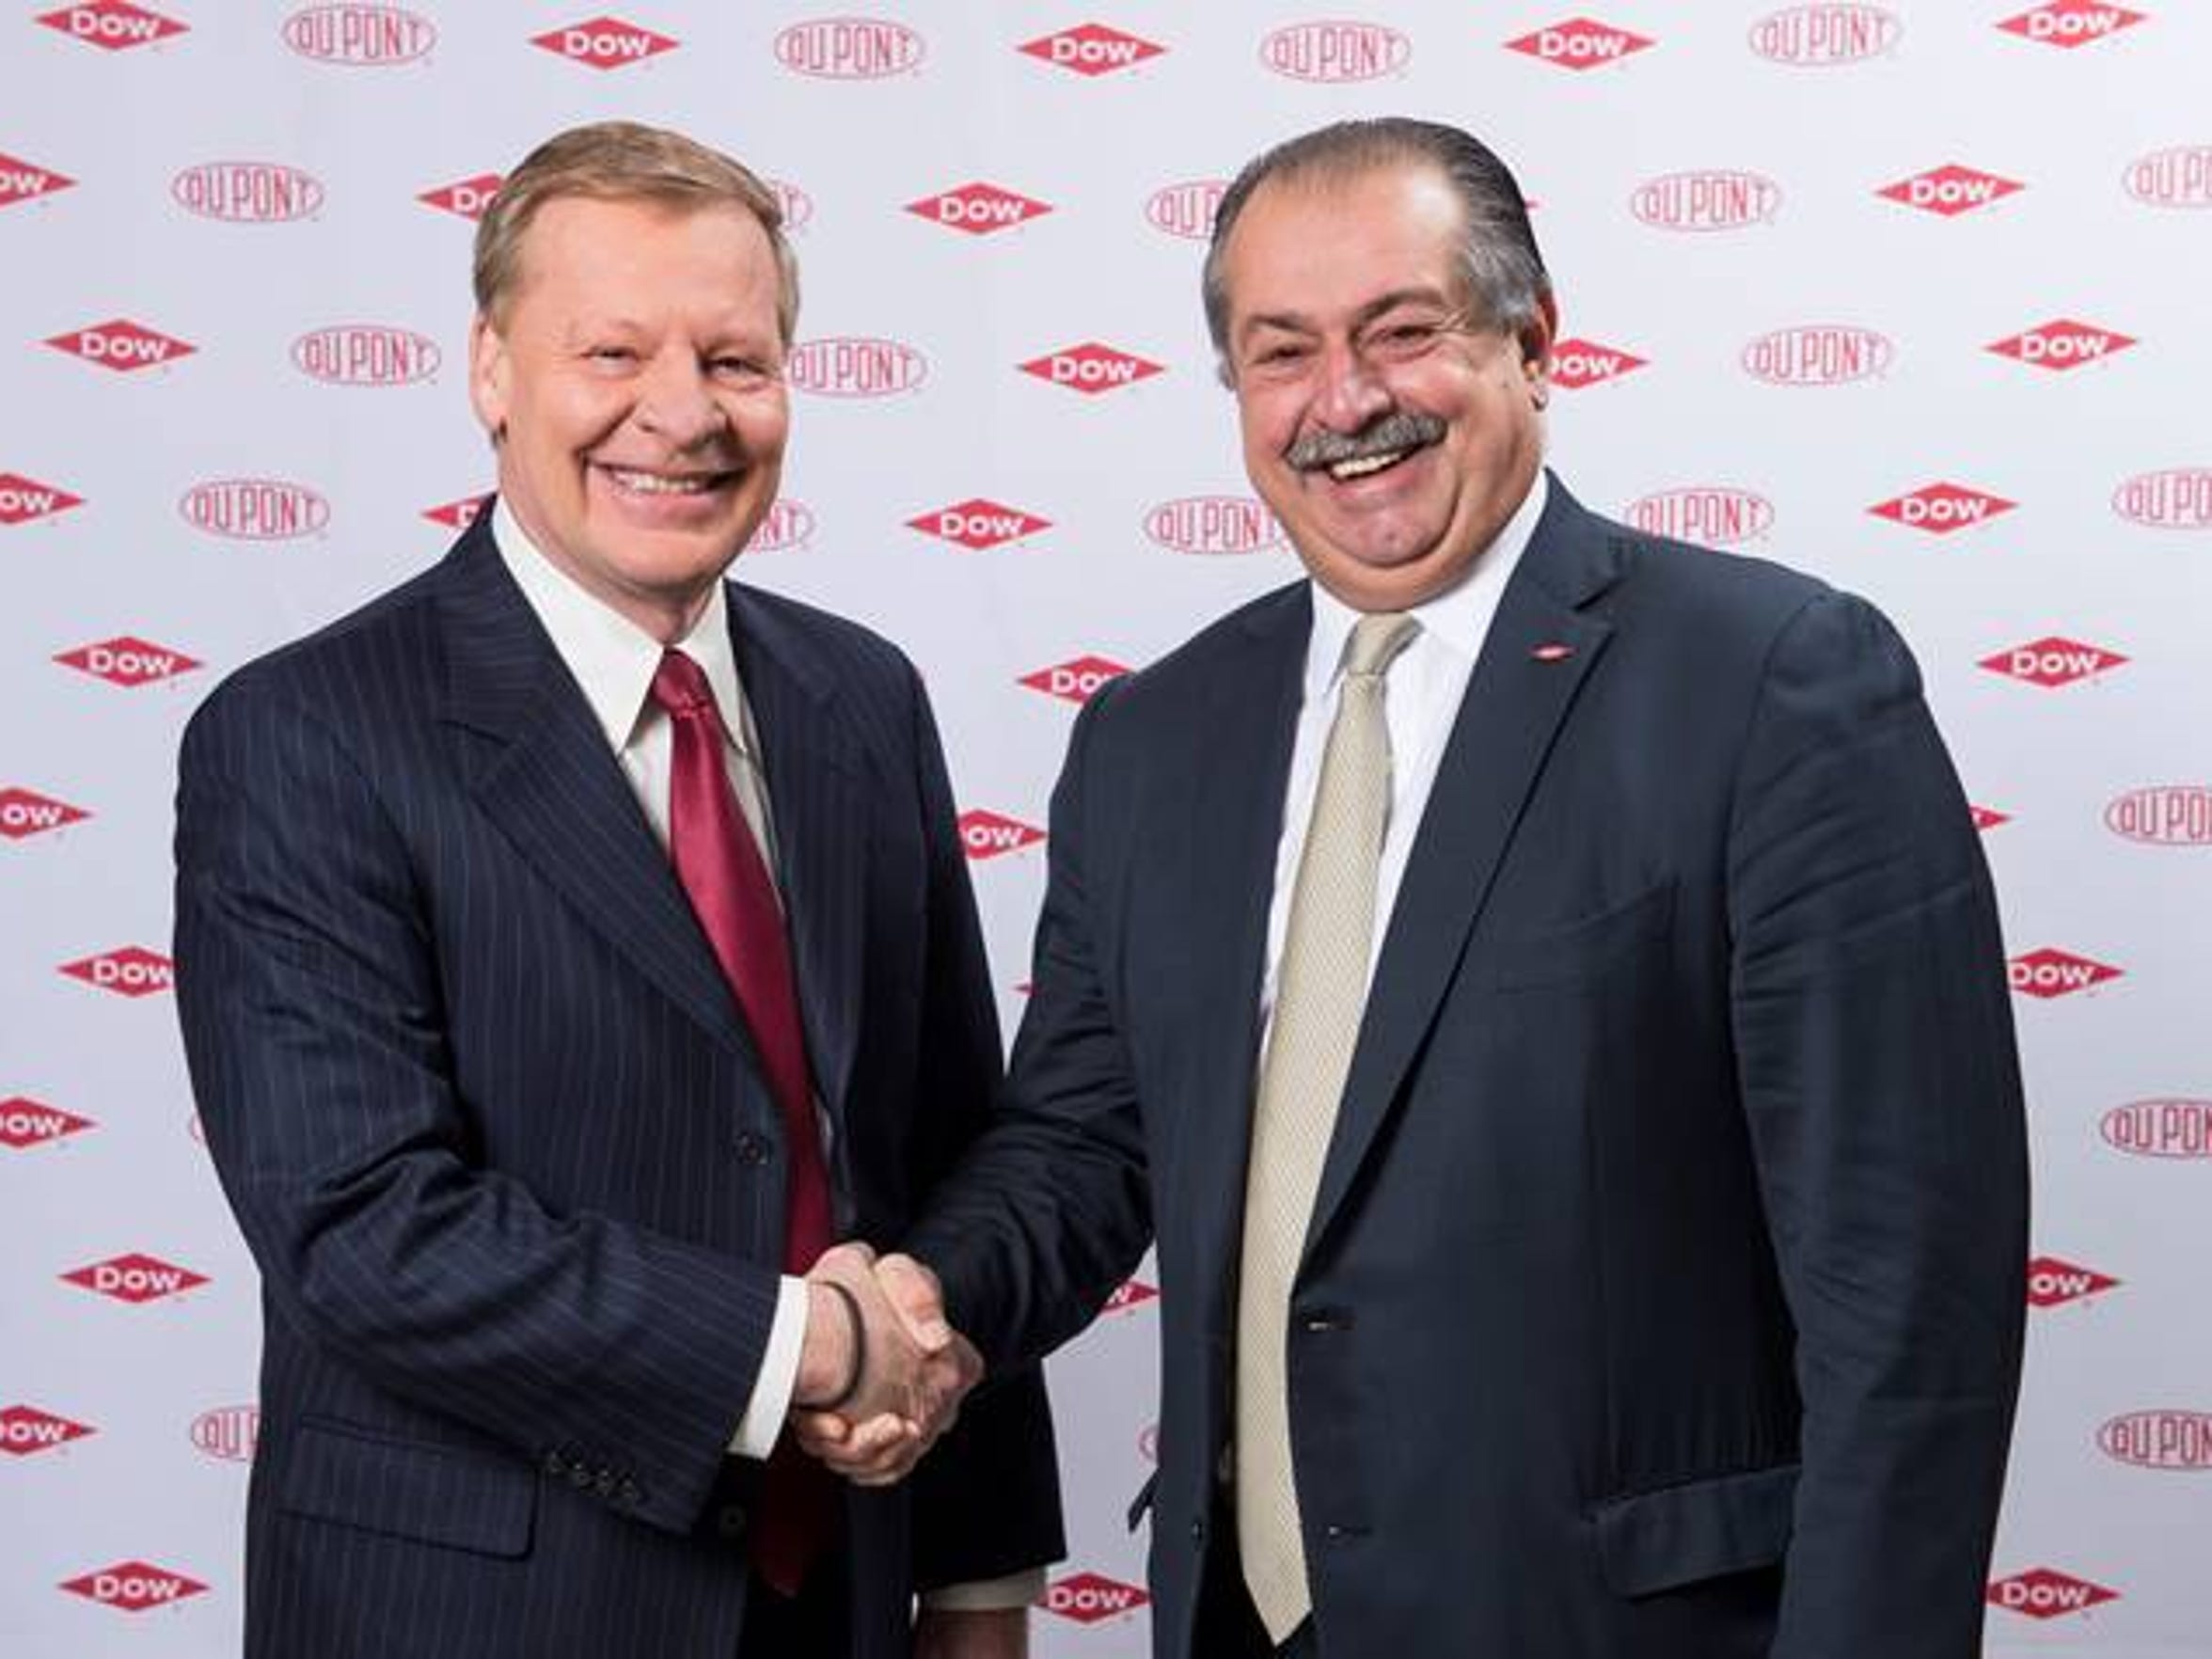 DuPont Chief Executive Ed Breen (left) shakes the hand of Dow Chemical Chief Executive Andrew Liveris in December after the two companies agreed to pursue a merger.